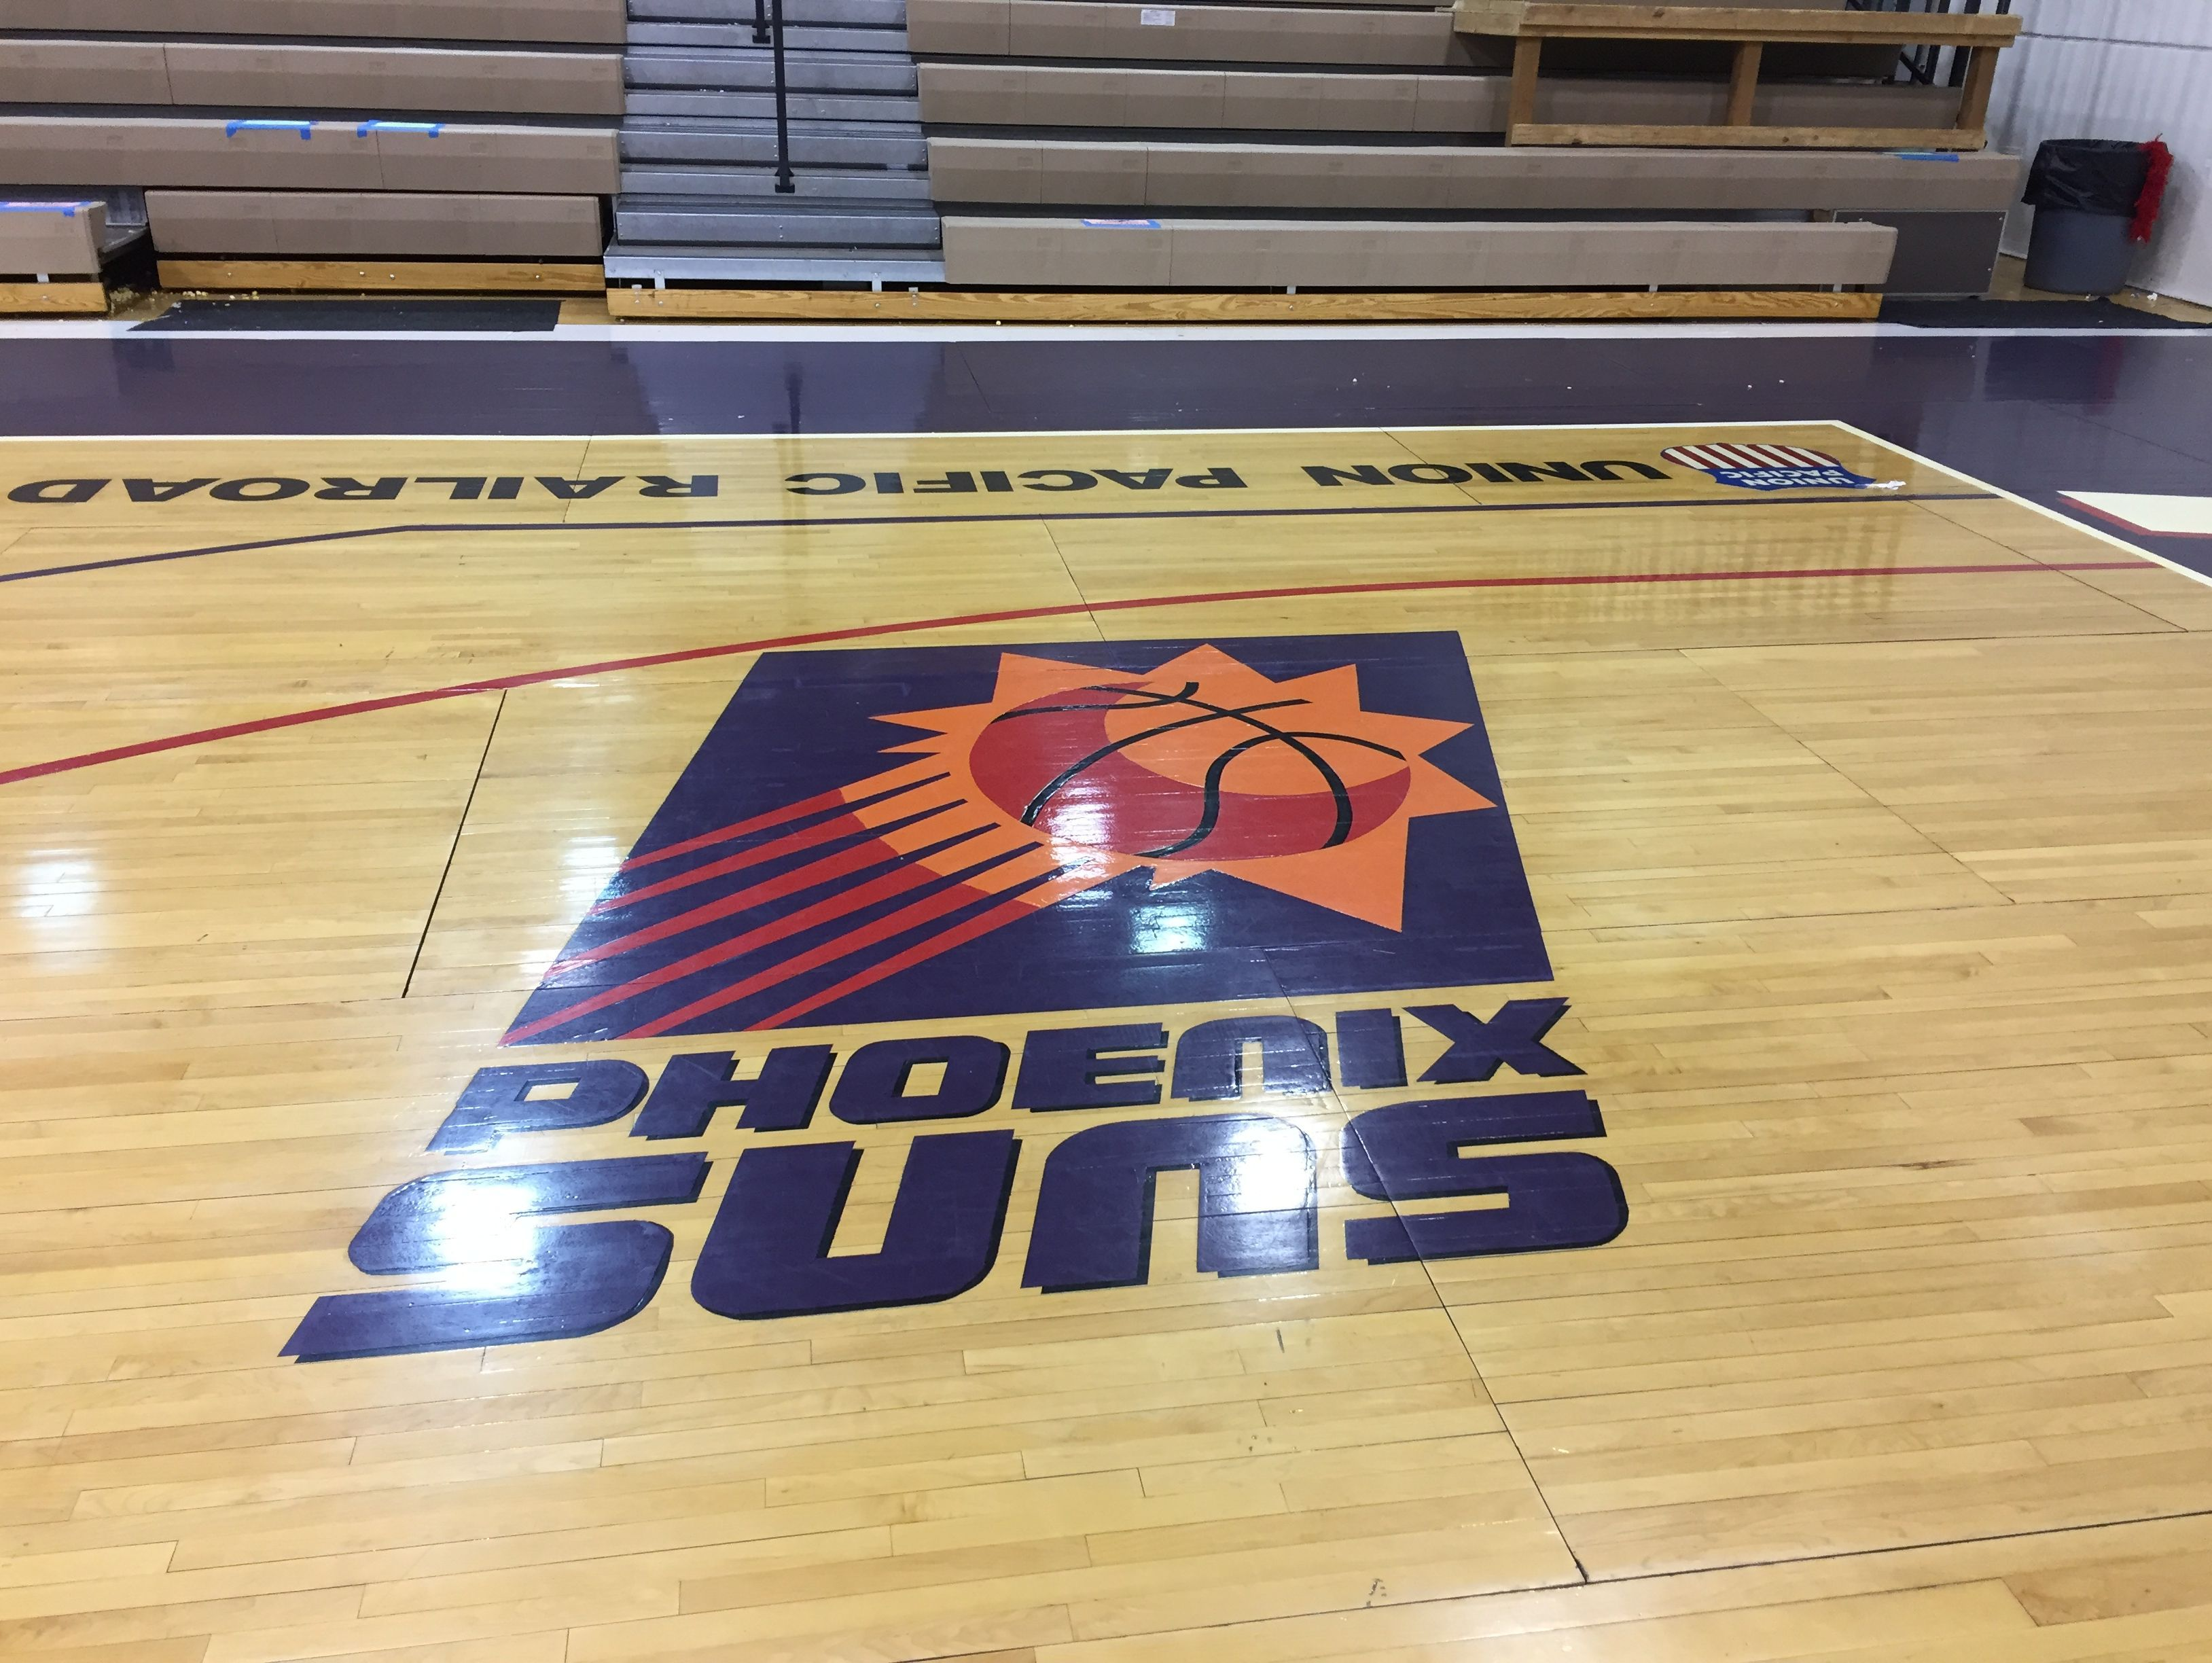 The court at Pendleton Convention Center was donated by the NBA's Phoenix Suns.